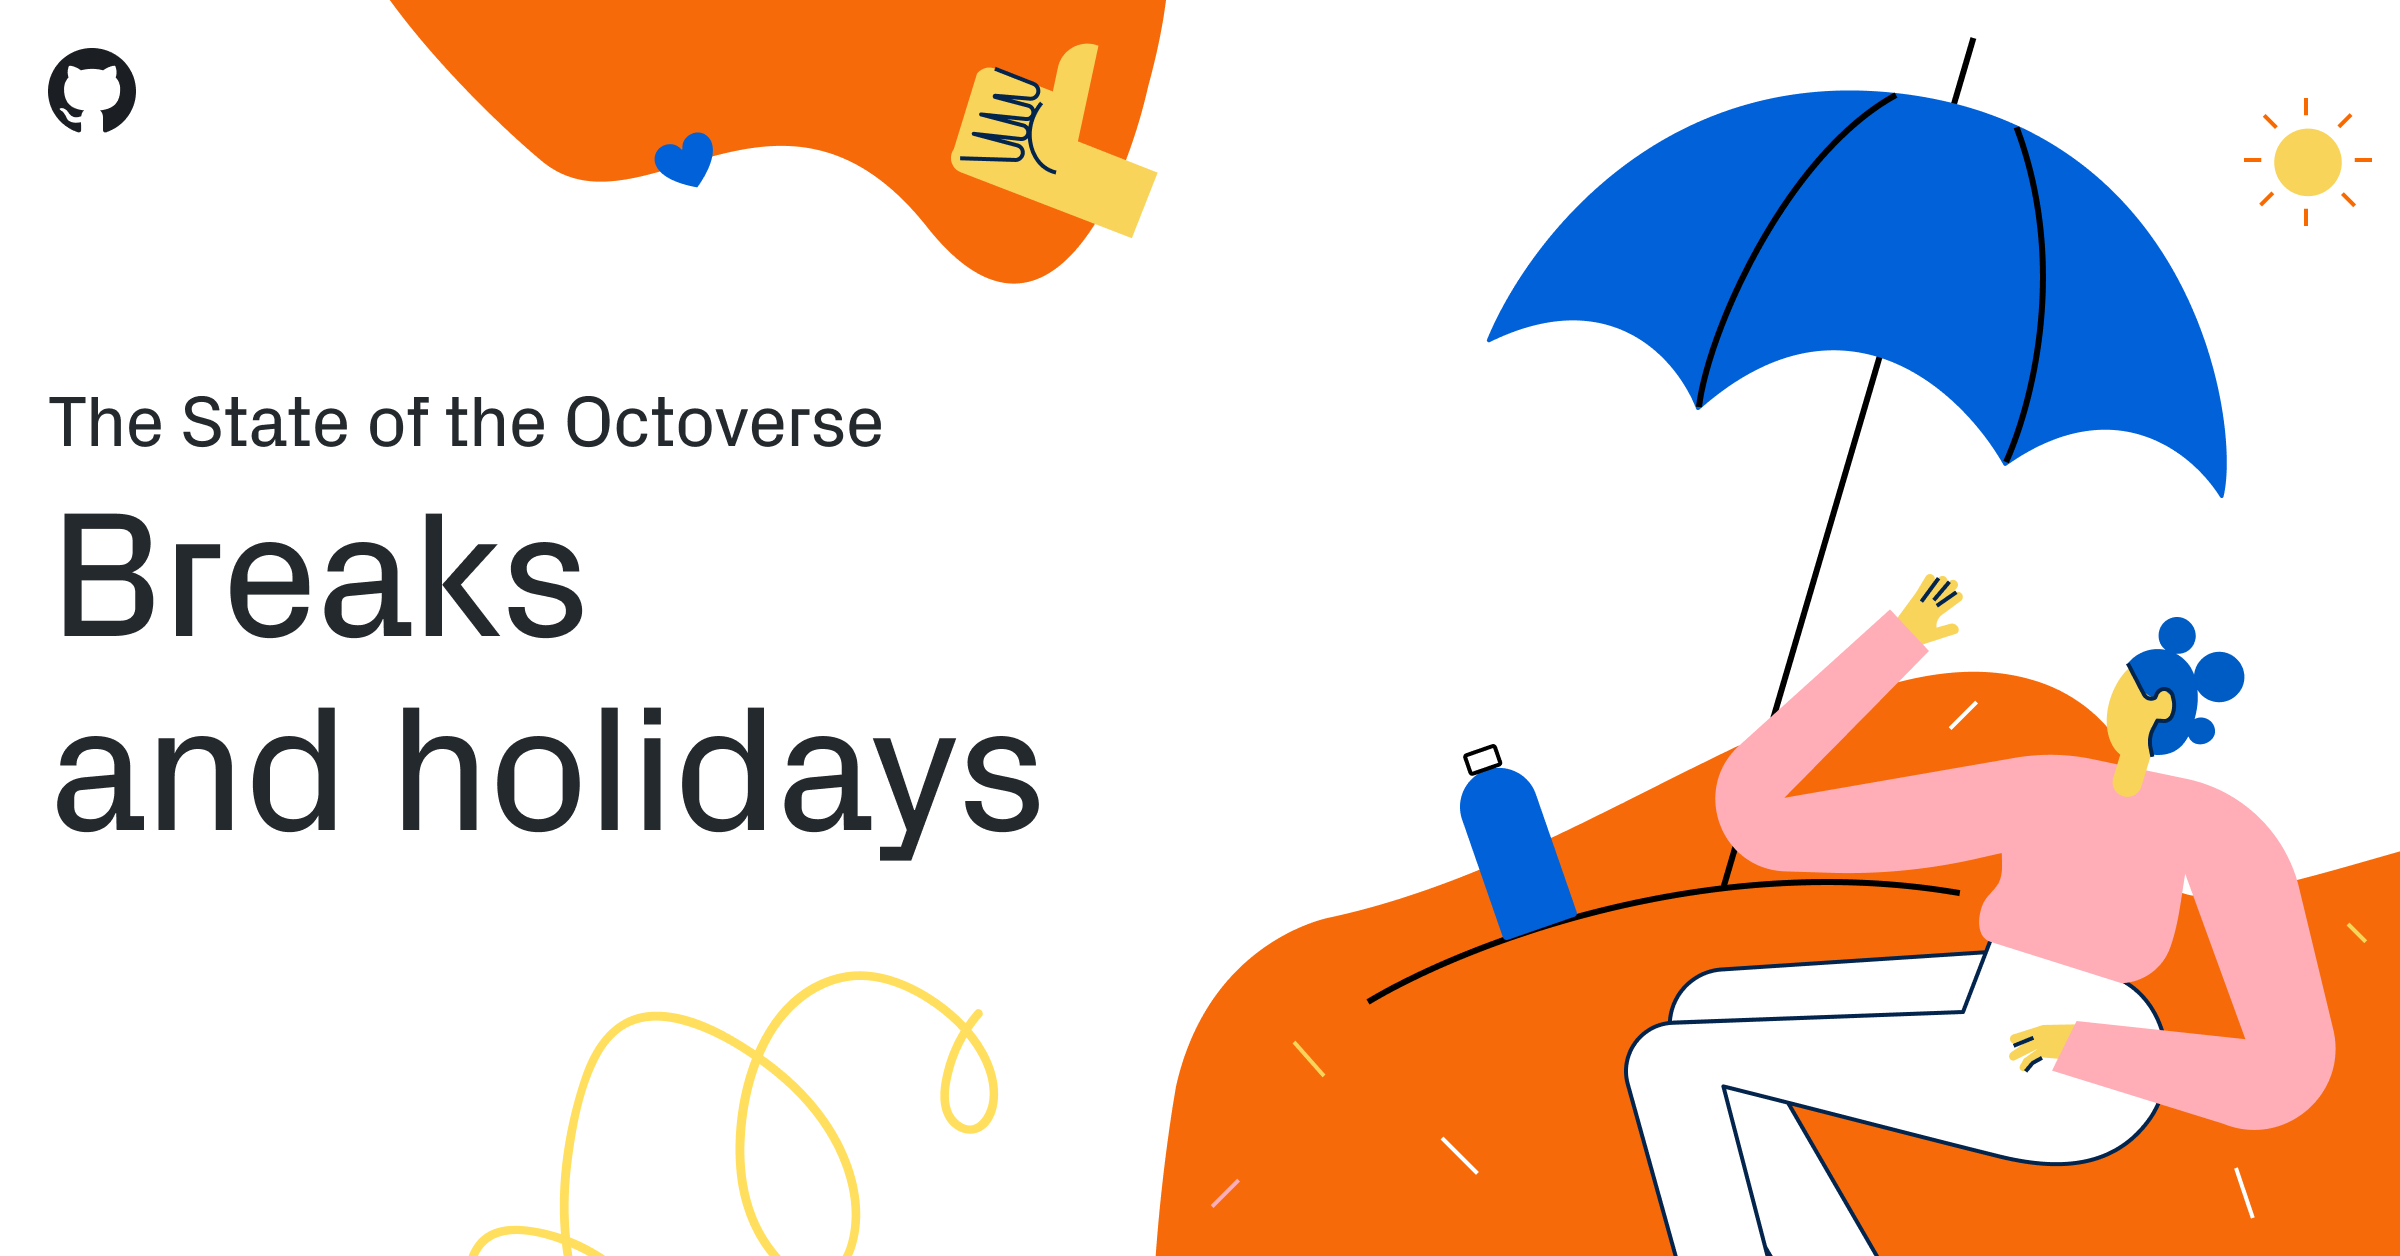 The State of the Octoverse: breaks and holidays - The GitHub Blog